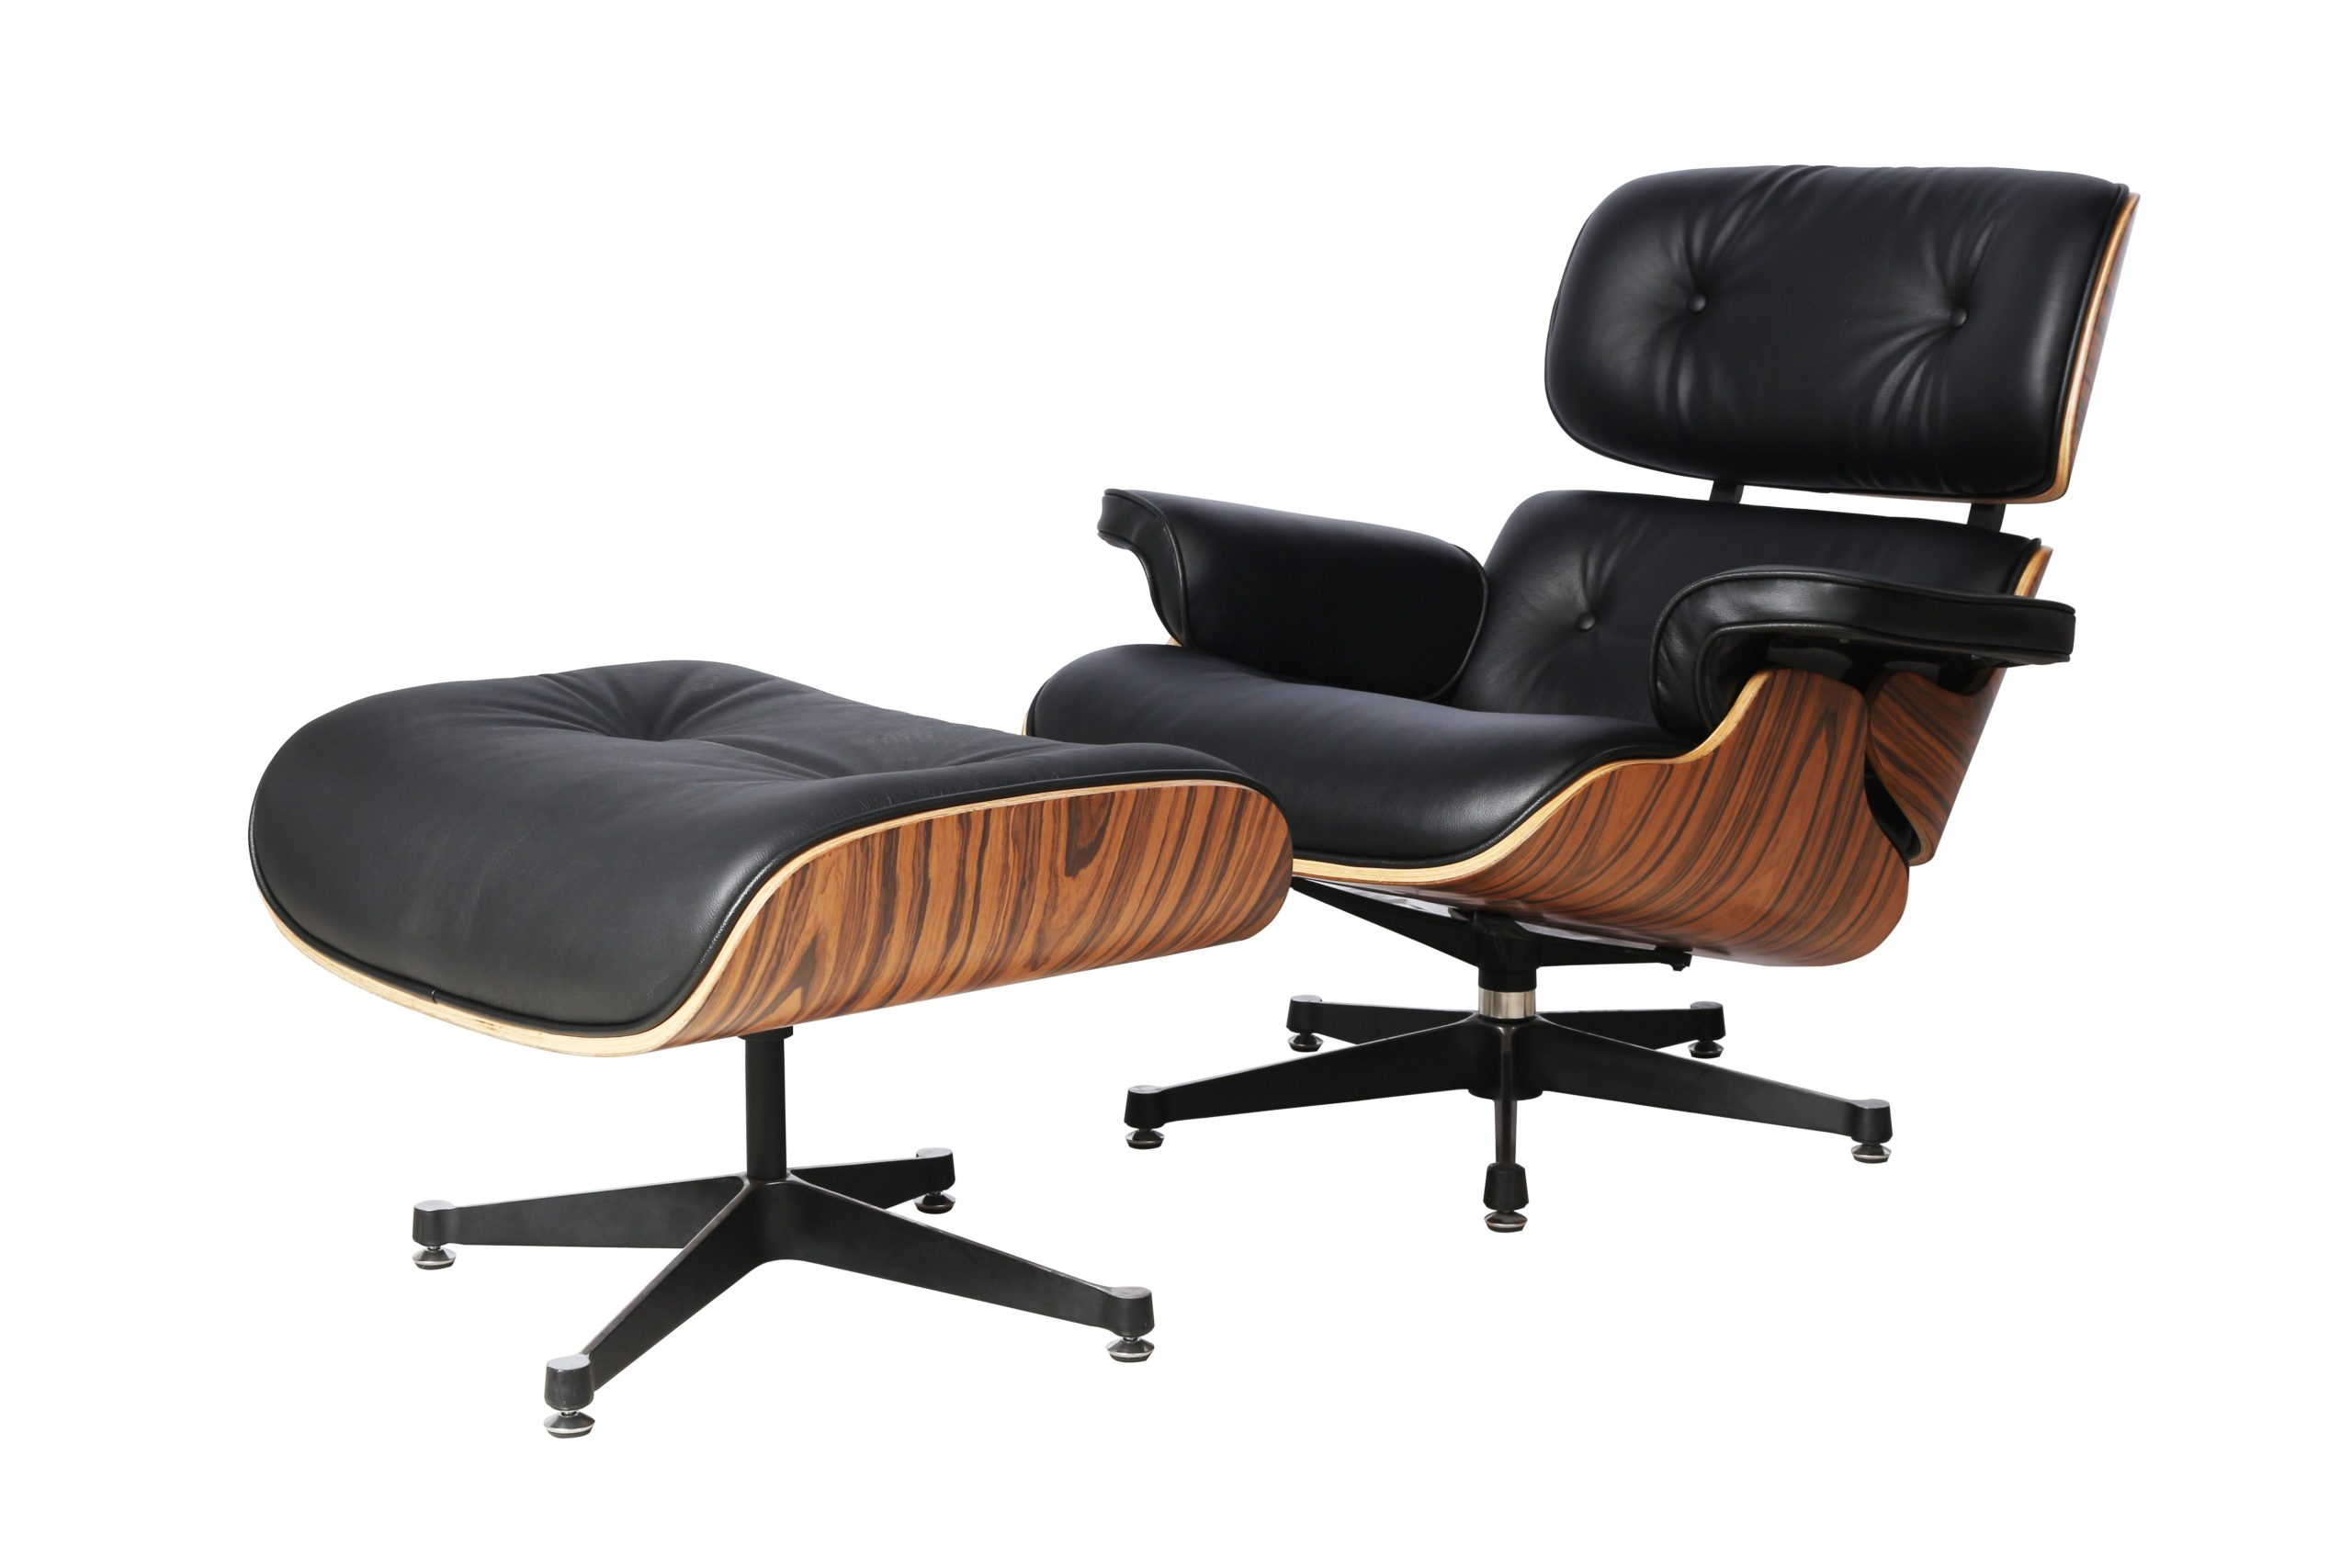 Charles Eames Lounge Chair Charles Eames Lounge Chair And Ottoman Replica - Black - Light Wood Rose Wood - Elephant Base - Decomica - As A Brand Known For Quality And Excellent Service